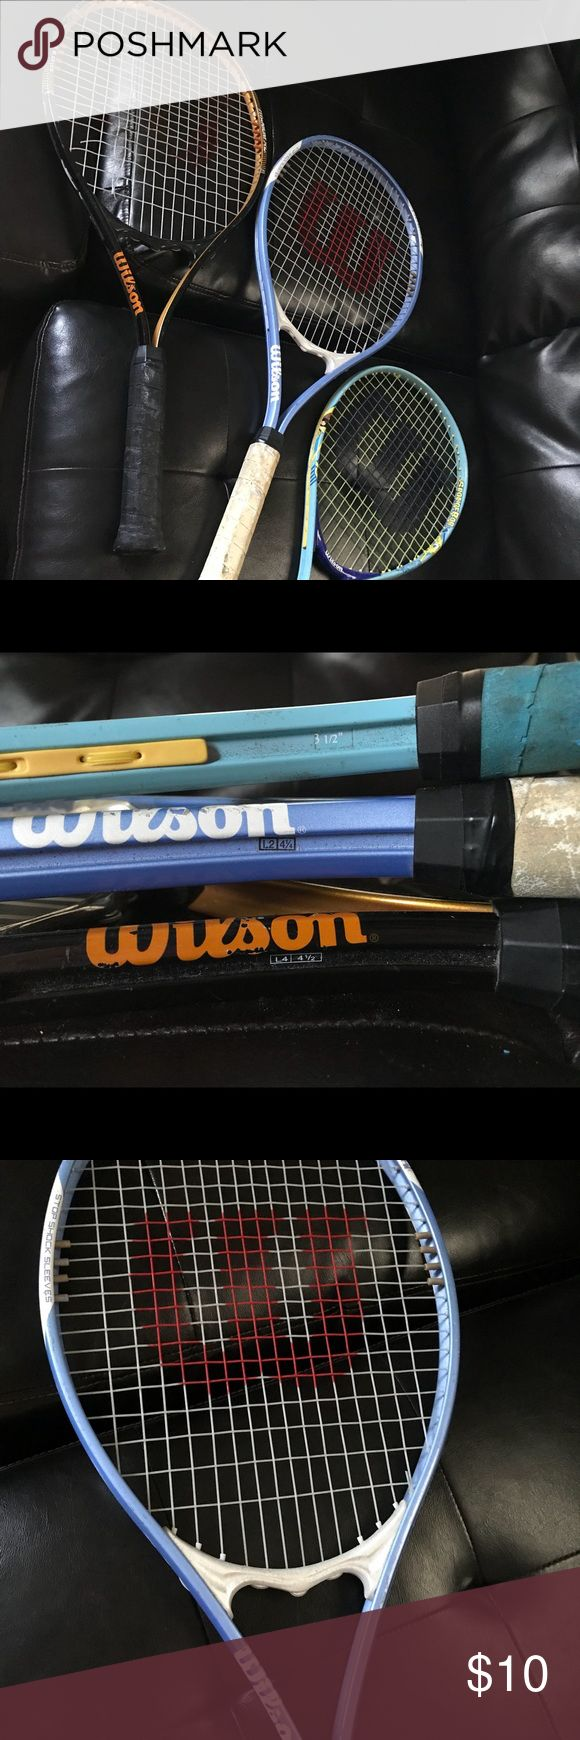 3 Wilson Tennis Racquets Bundle deal 3 Tennis Wilson racquets. 1 Black Triumph Stop Shock sleeves- V-Matrix L4 -4 1/2 is the only one with some broken lines, 1 Baby Blue triumph stop shock sleeves-V-Matrix L2 -4 1/4, and 1 Sponge Bob 3 1/2. All 3 preowned, a bit dusty but has lots of play to live!! #wilsontennisracquets #tennis #racquets Wilson Accessories